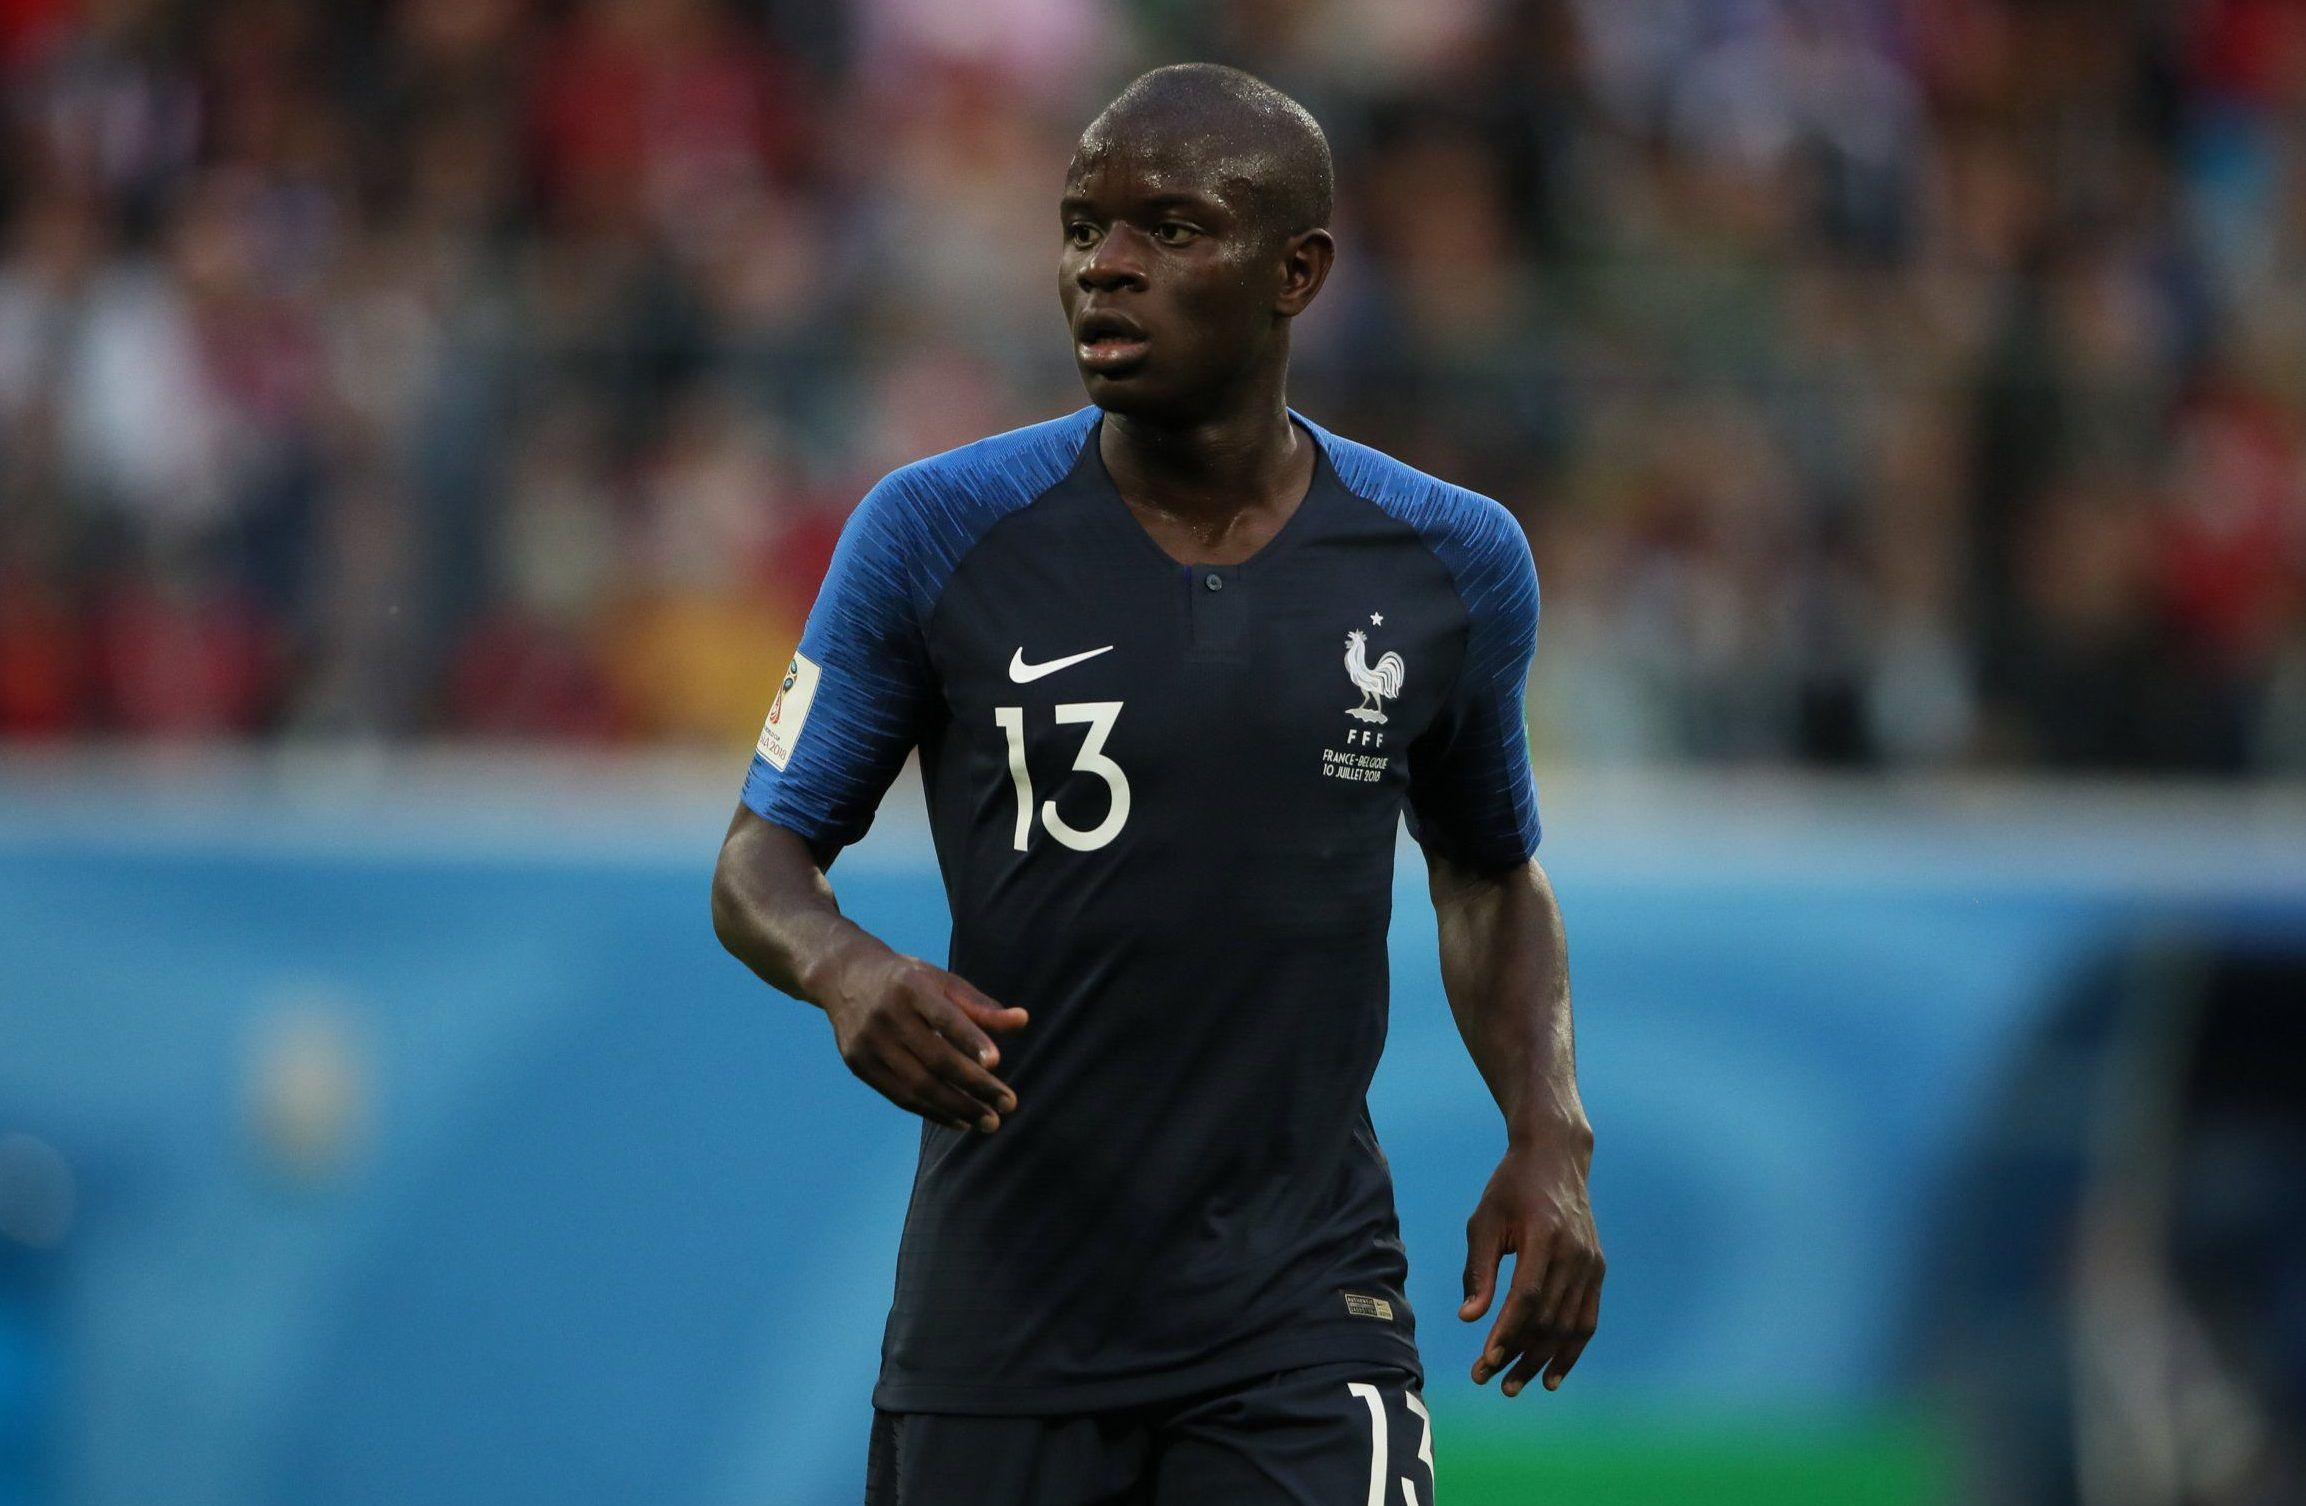 Arsene Wenger hails N'Golo Kante after France beat Belgium